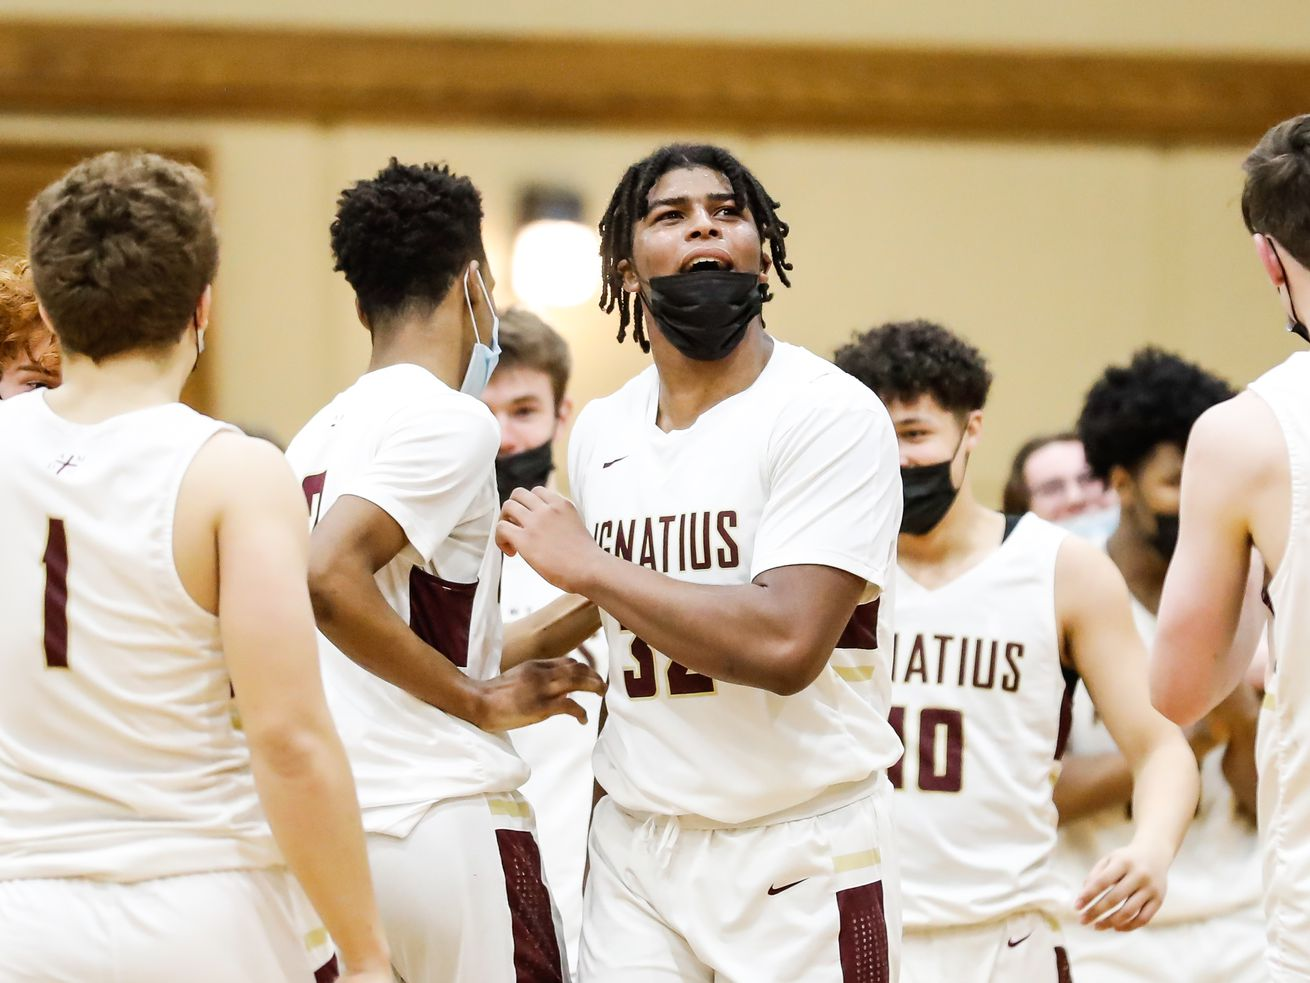 St. Ignatius' Kolby Gilles (32) reacts after winning the game against Curie.